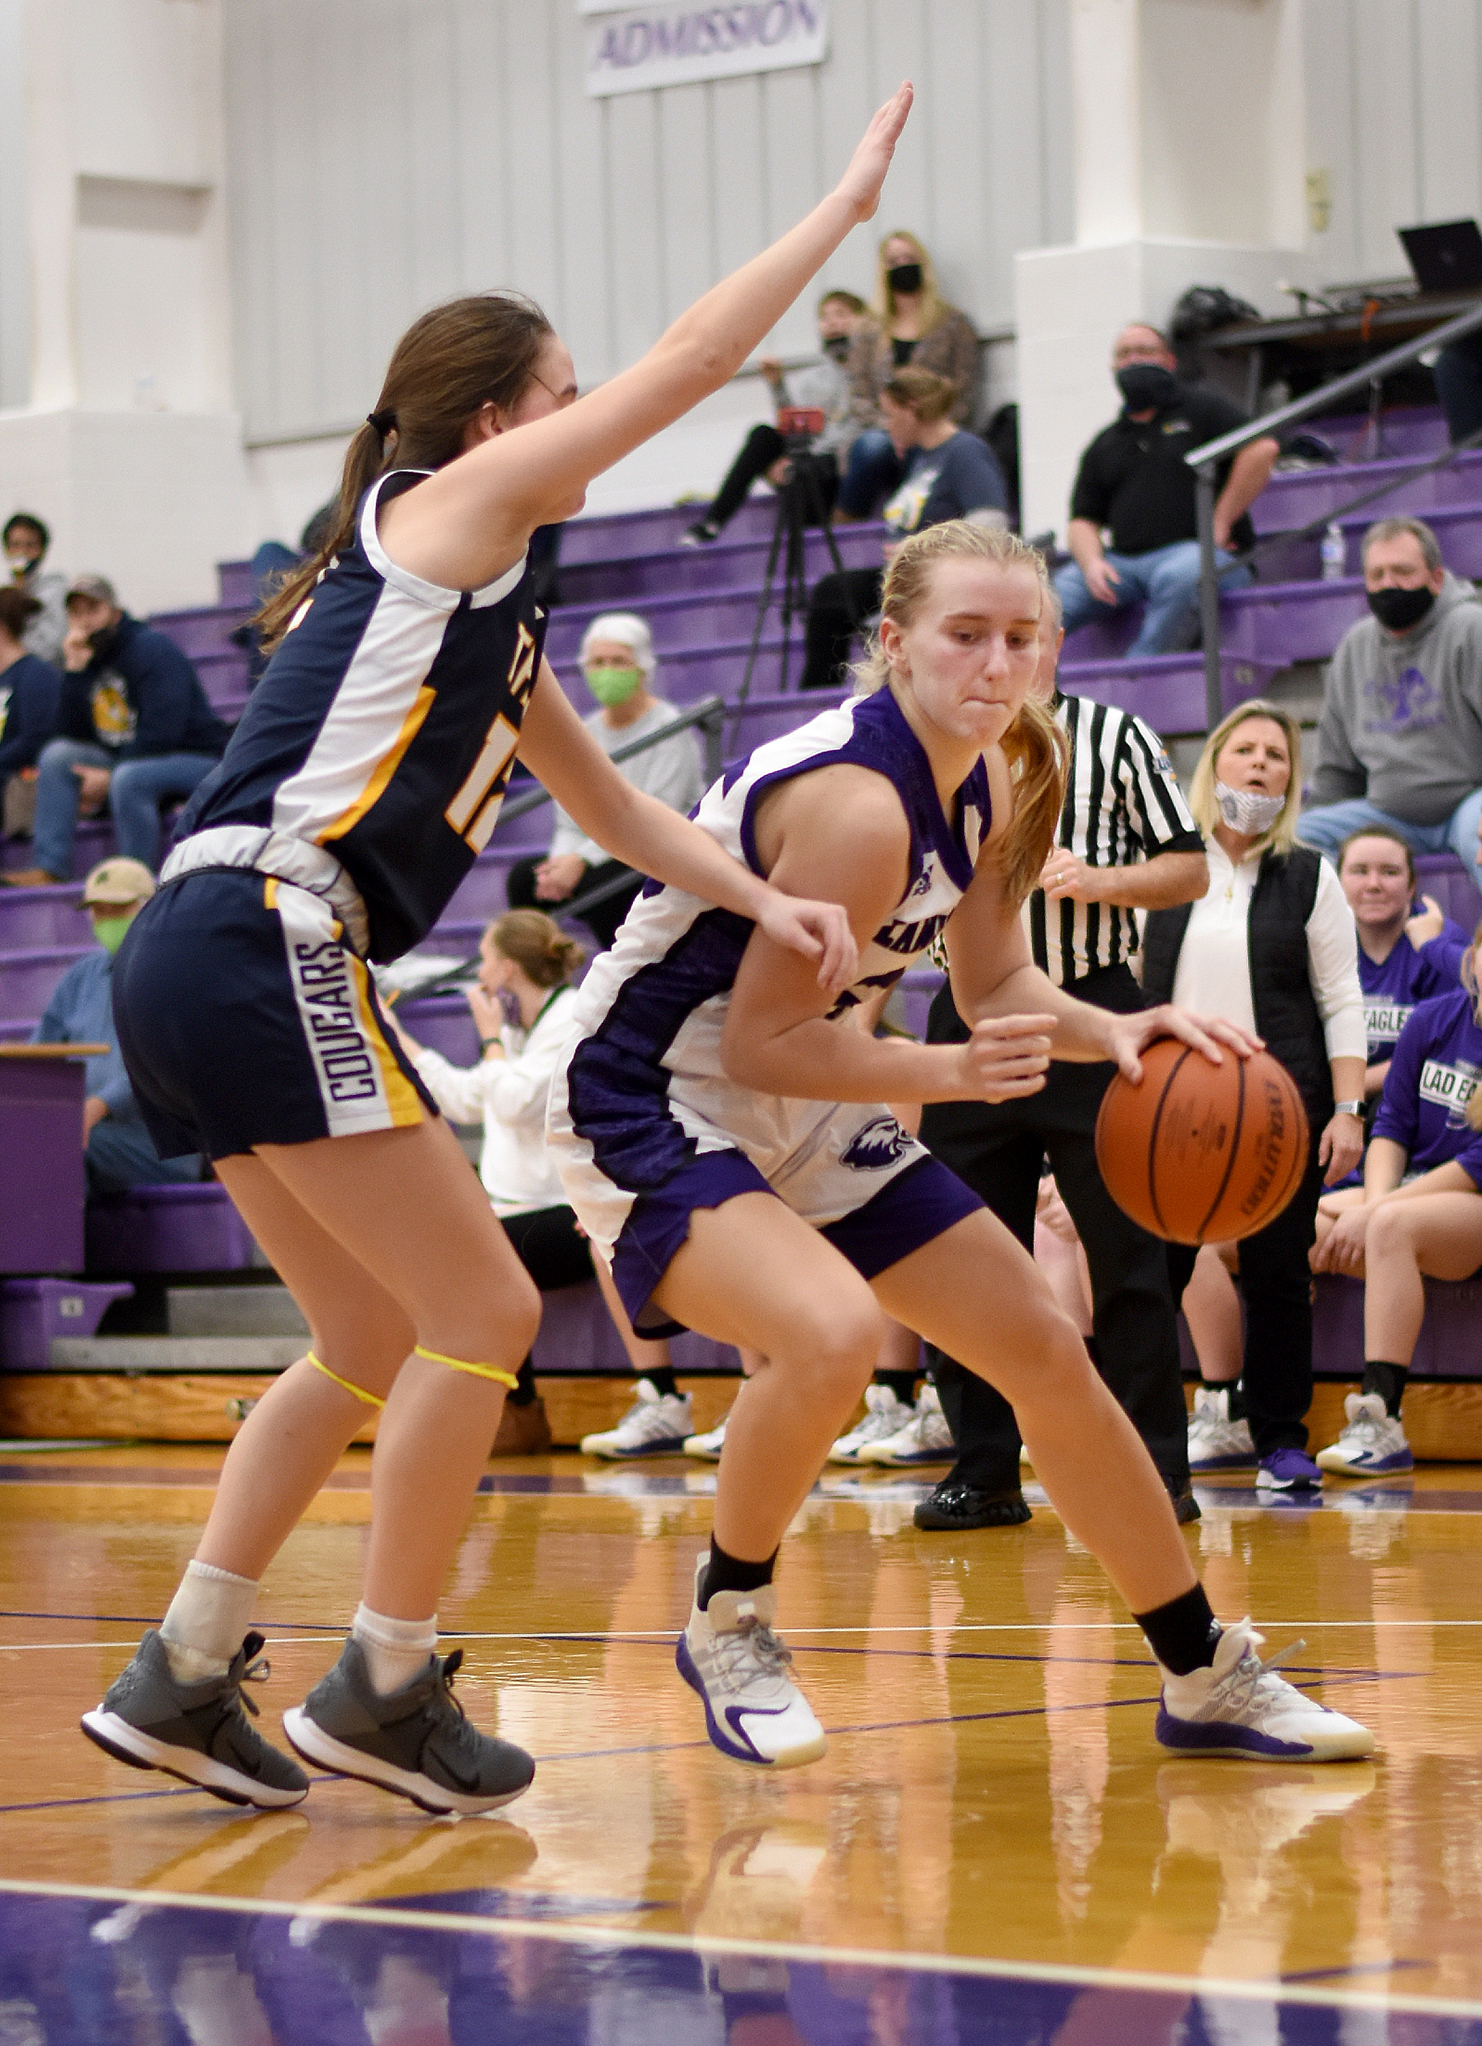 Lady Eagles fall to Trinity in 1-2 battle